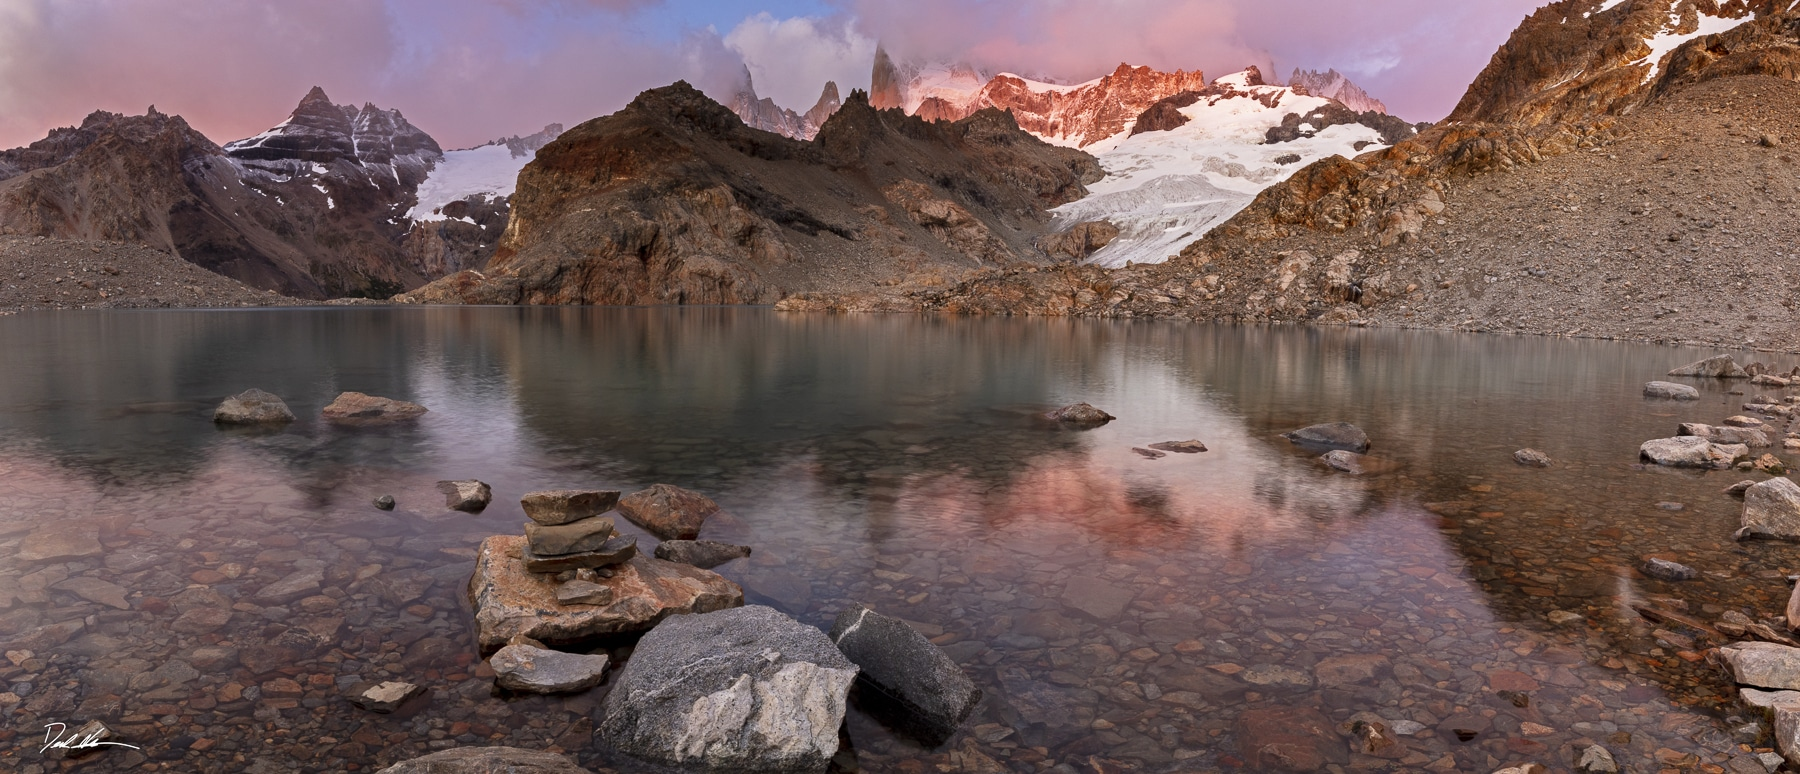 sunrise on alpine lake in Patagonia